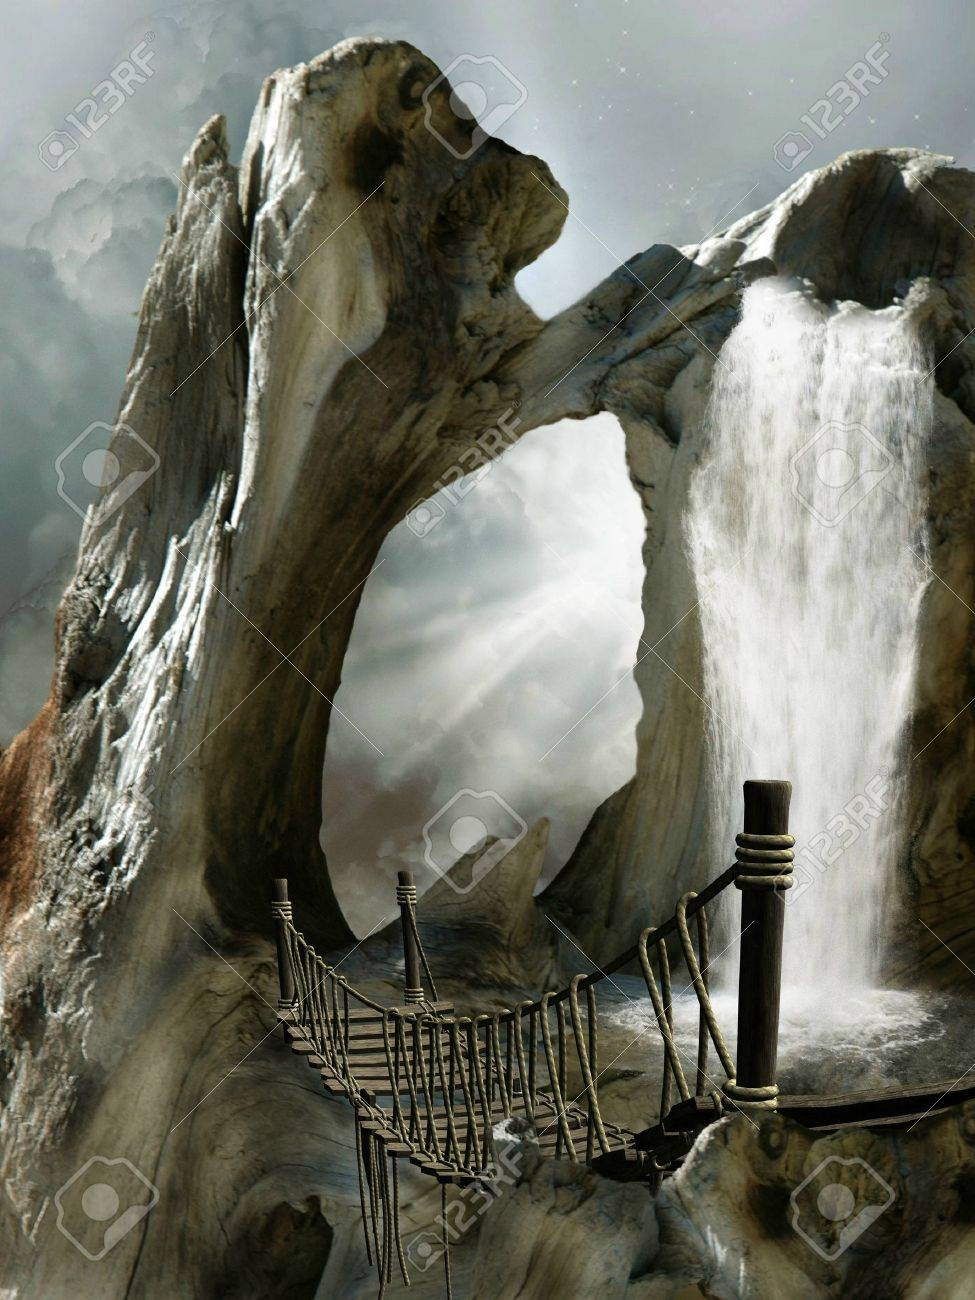 Fantasy Landscape in a trunk with waterfall Stock Photo - 14548234